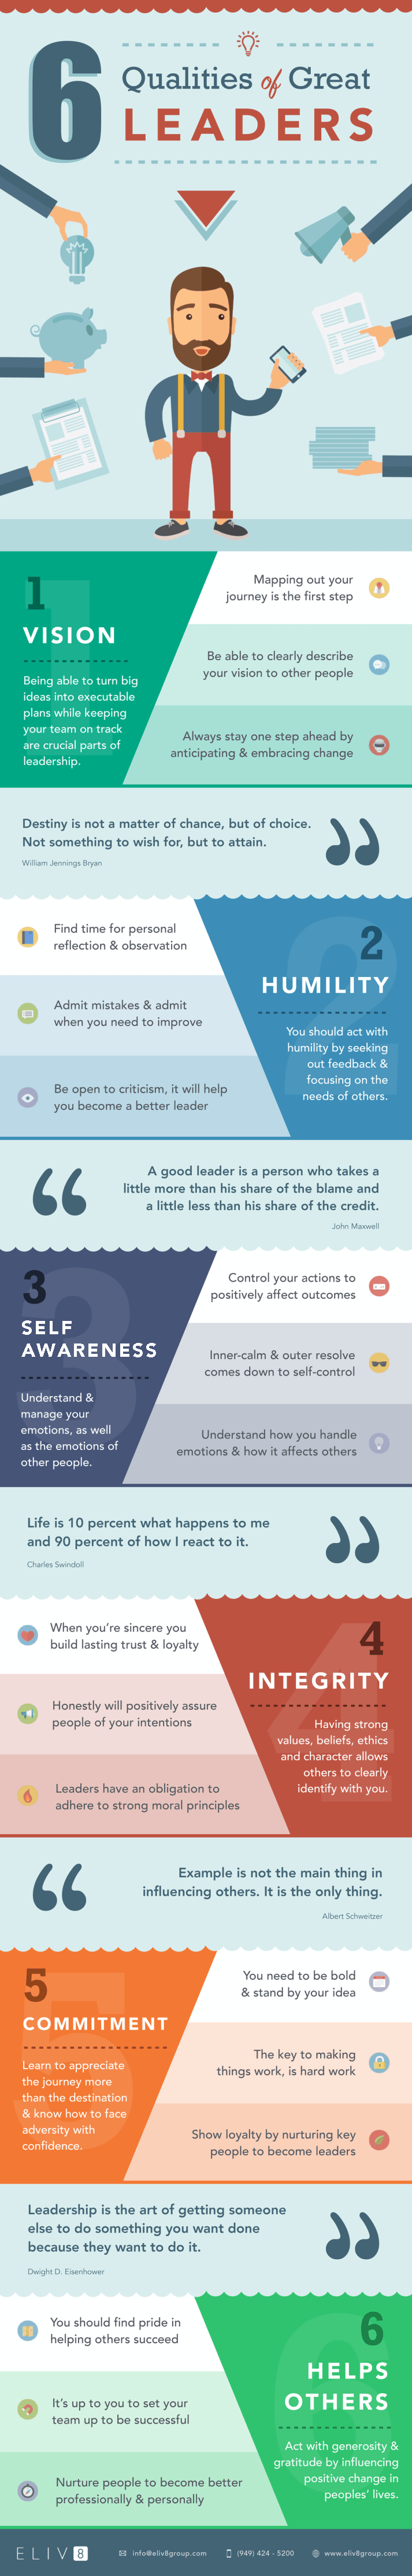 6Qualities ofGreatLeaders_01